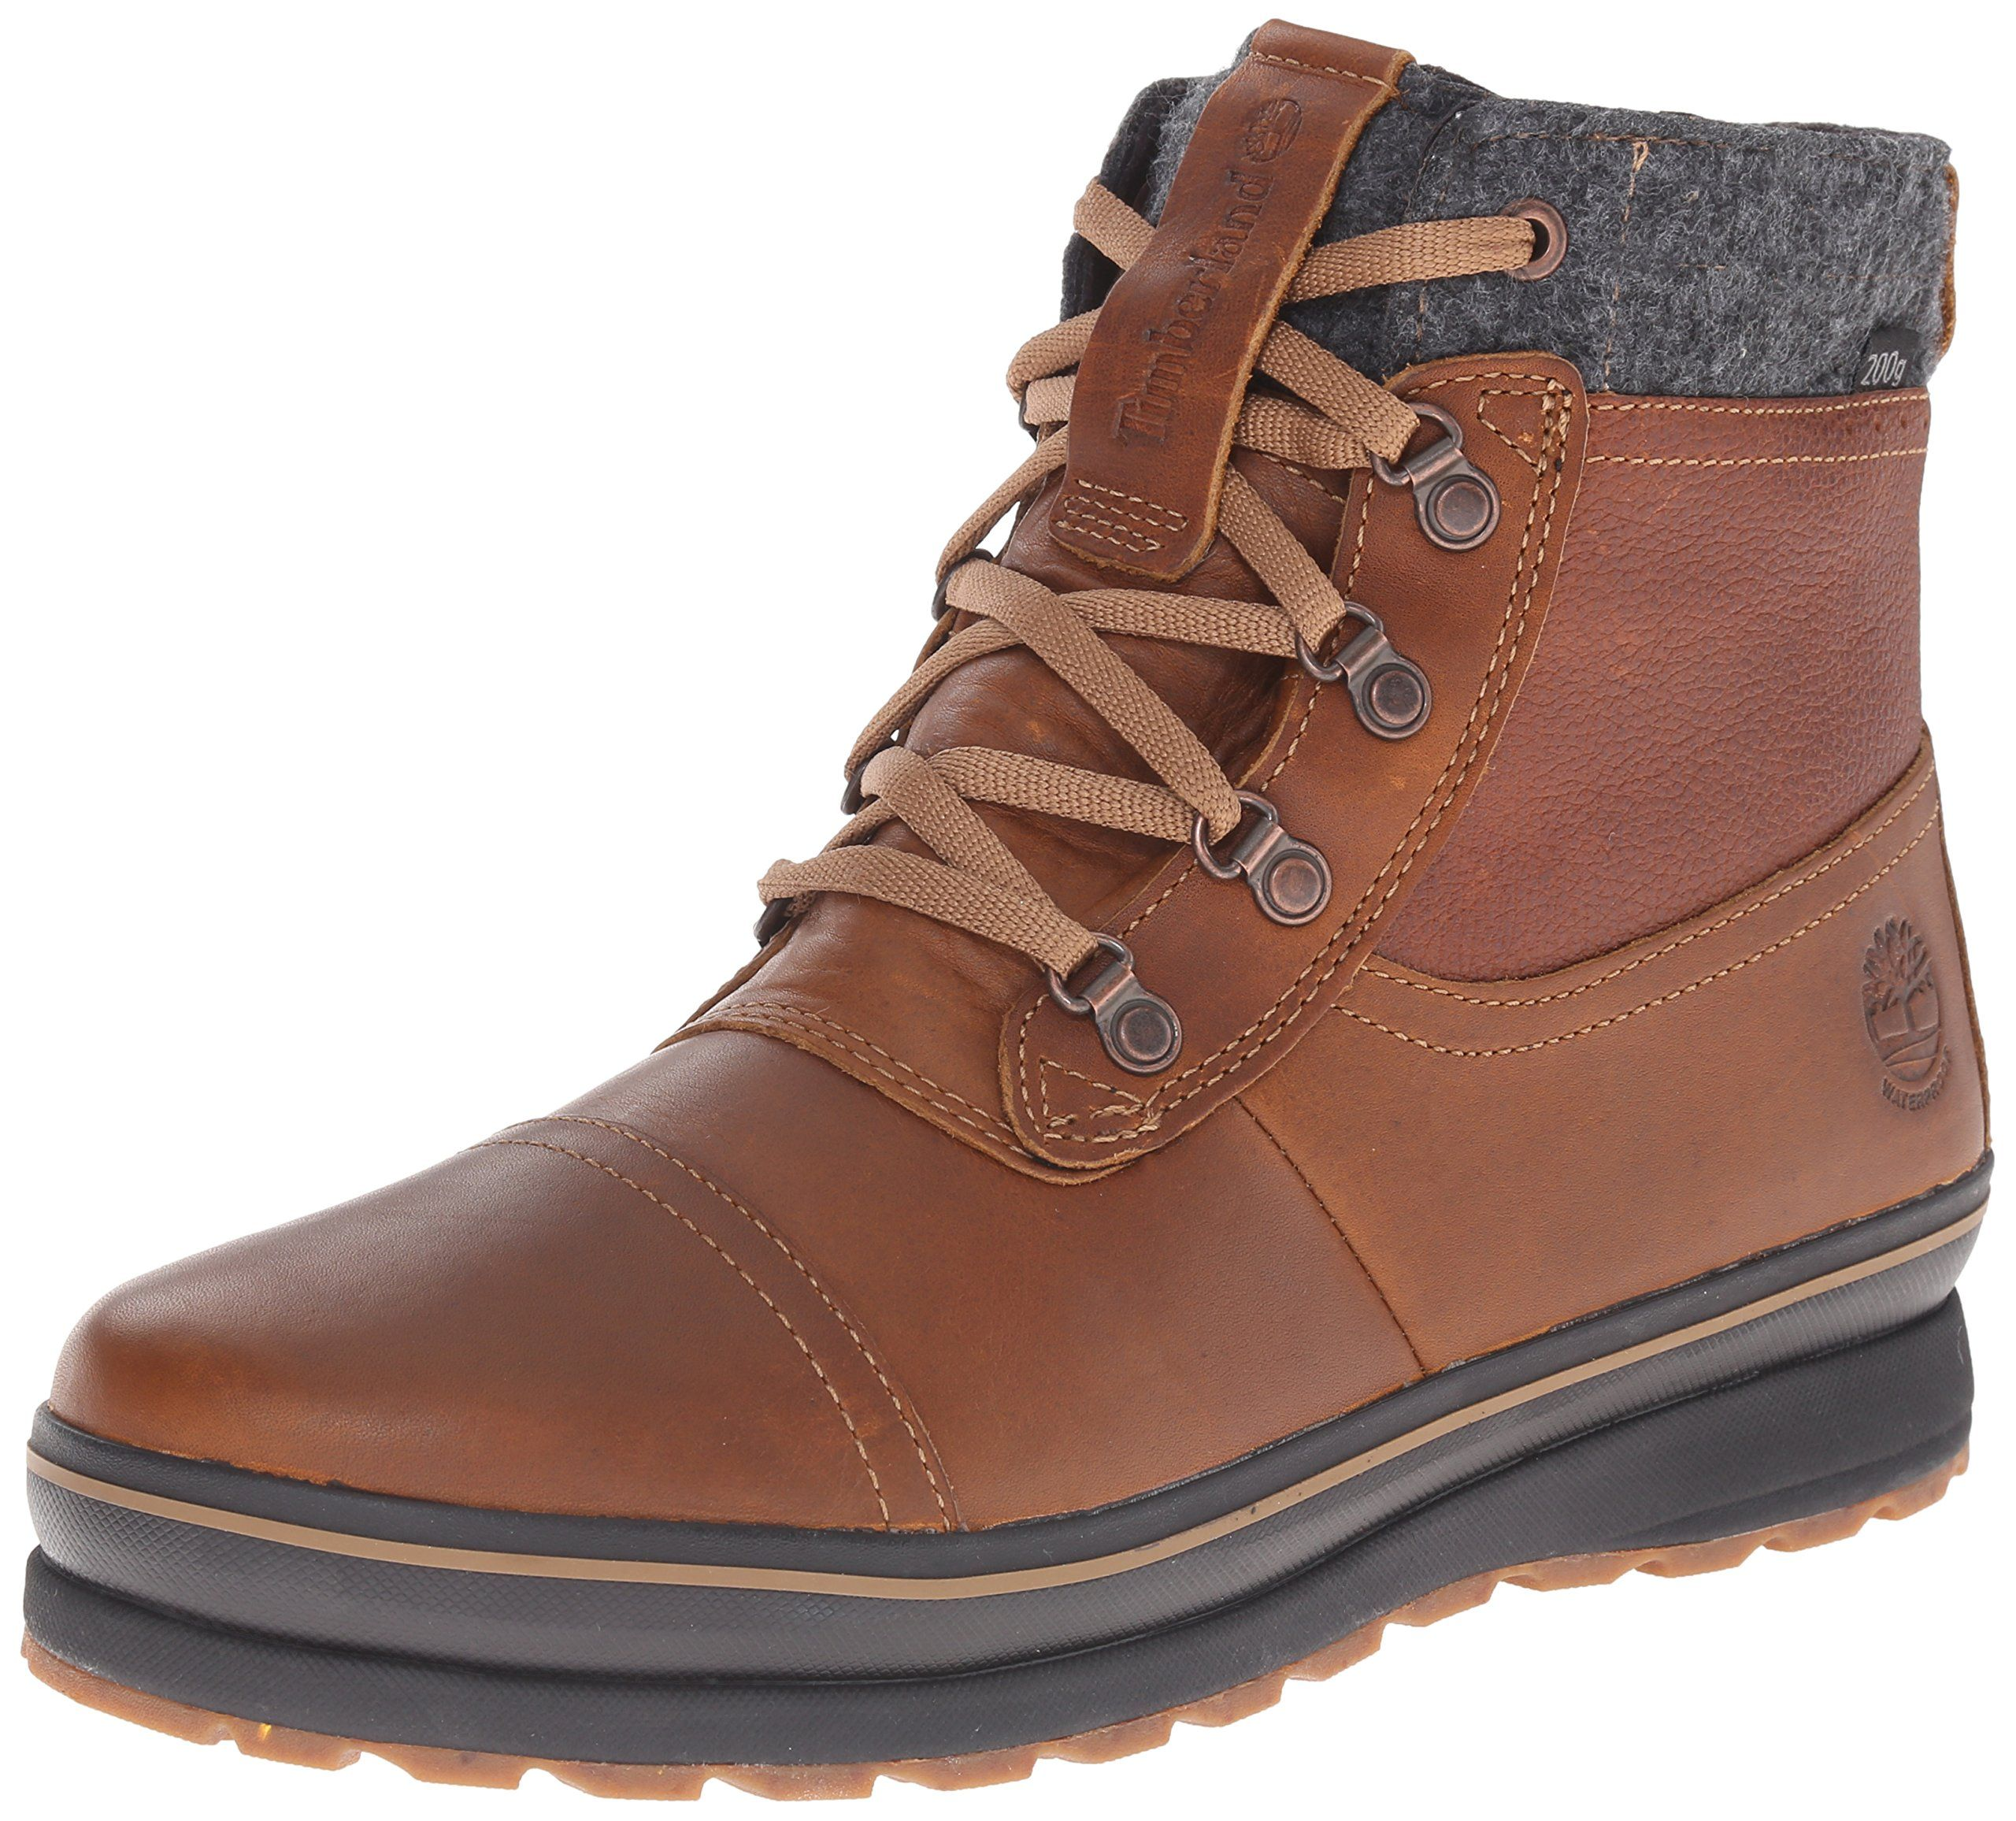 Amazon.com: Timberland Men's Schazzberg Mid WP Insulated Winter ...